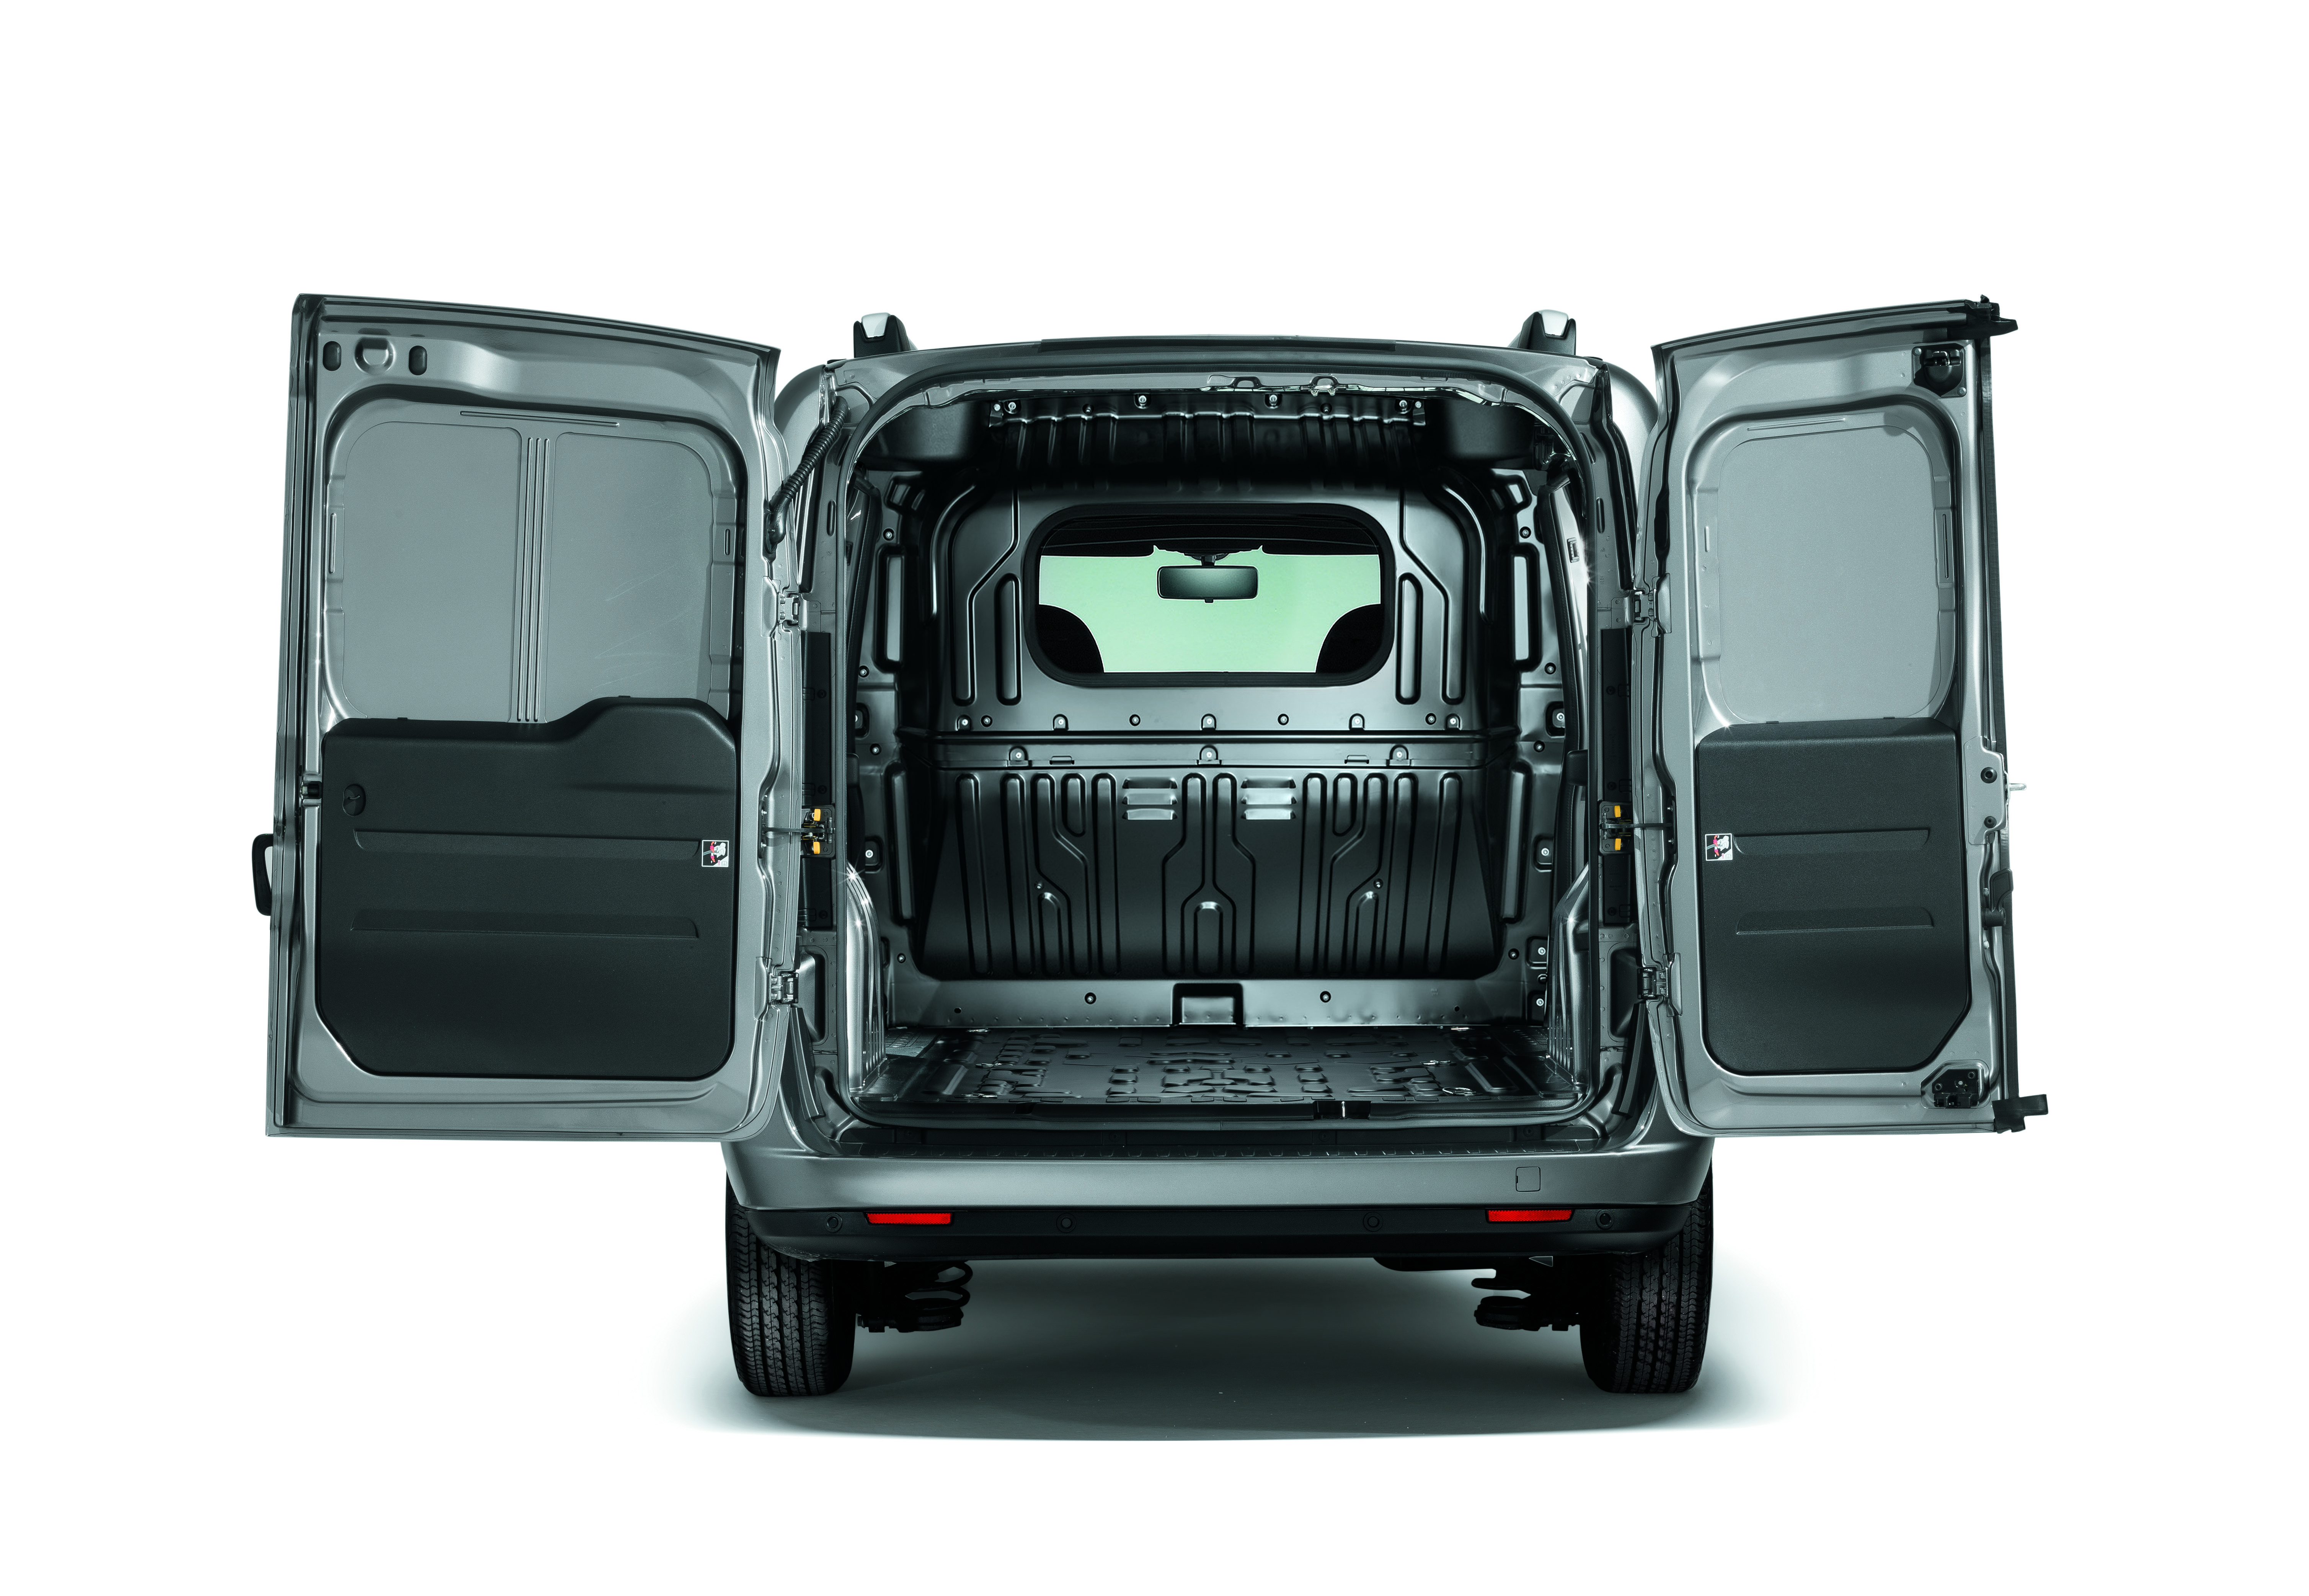 Fiat Doblo Cargo load space